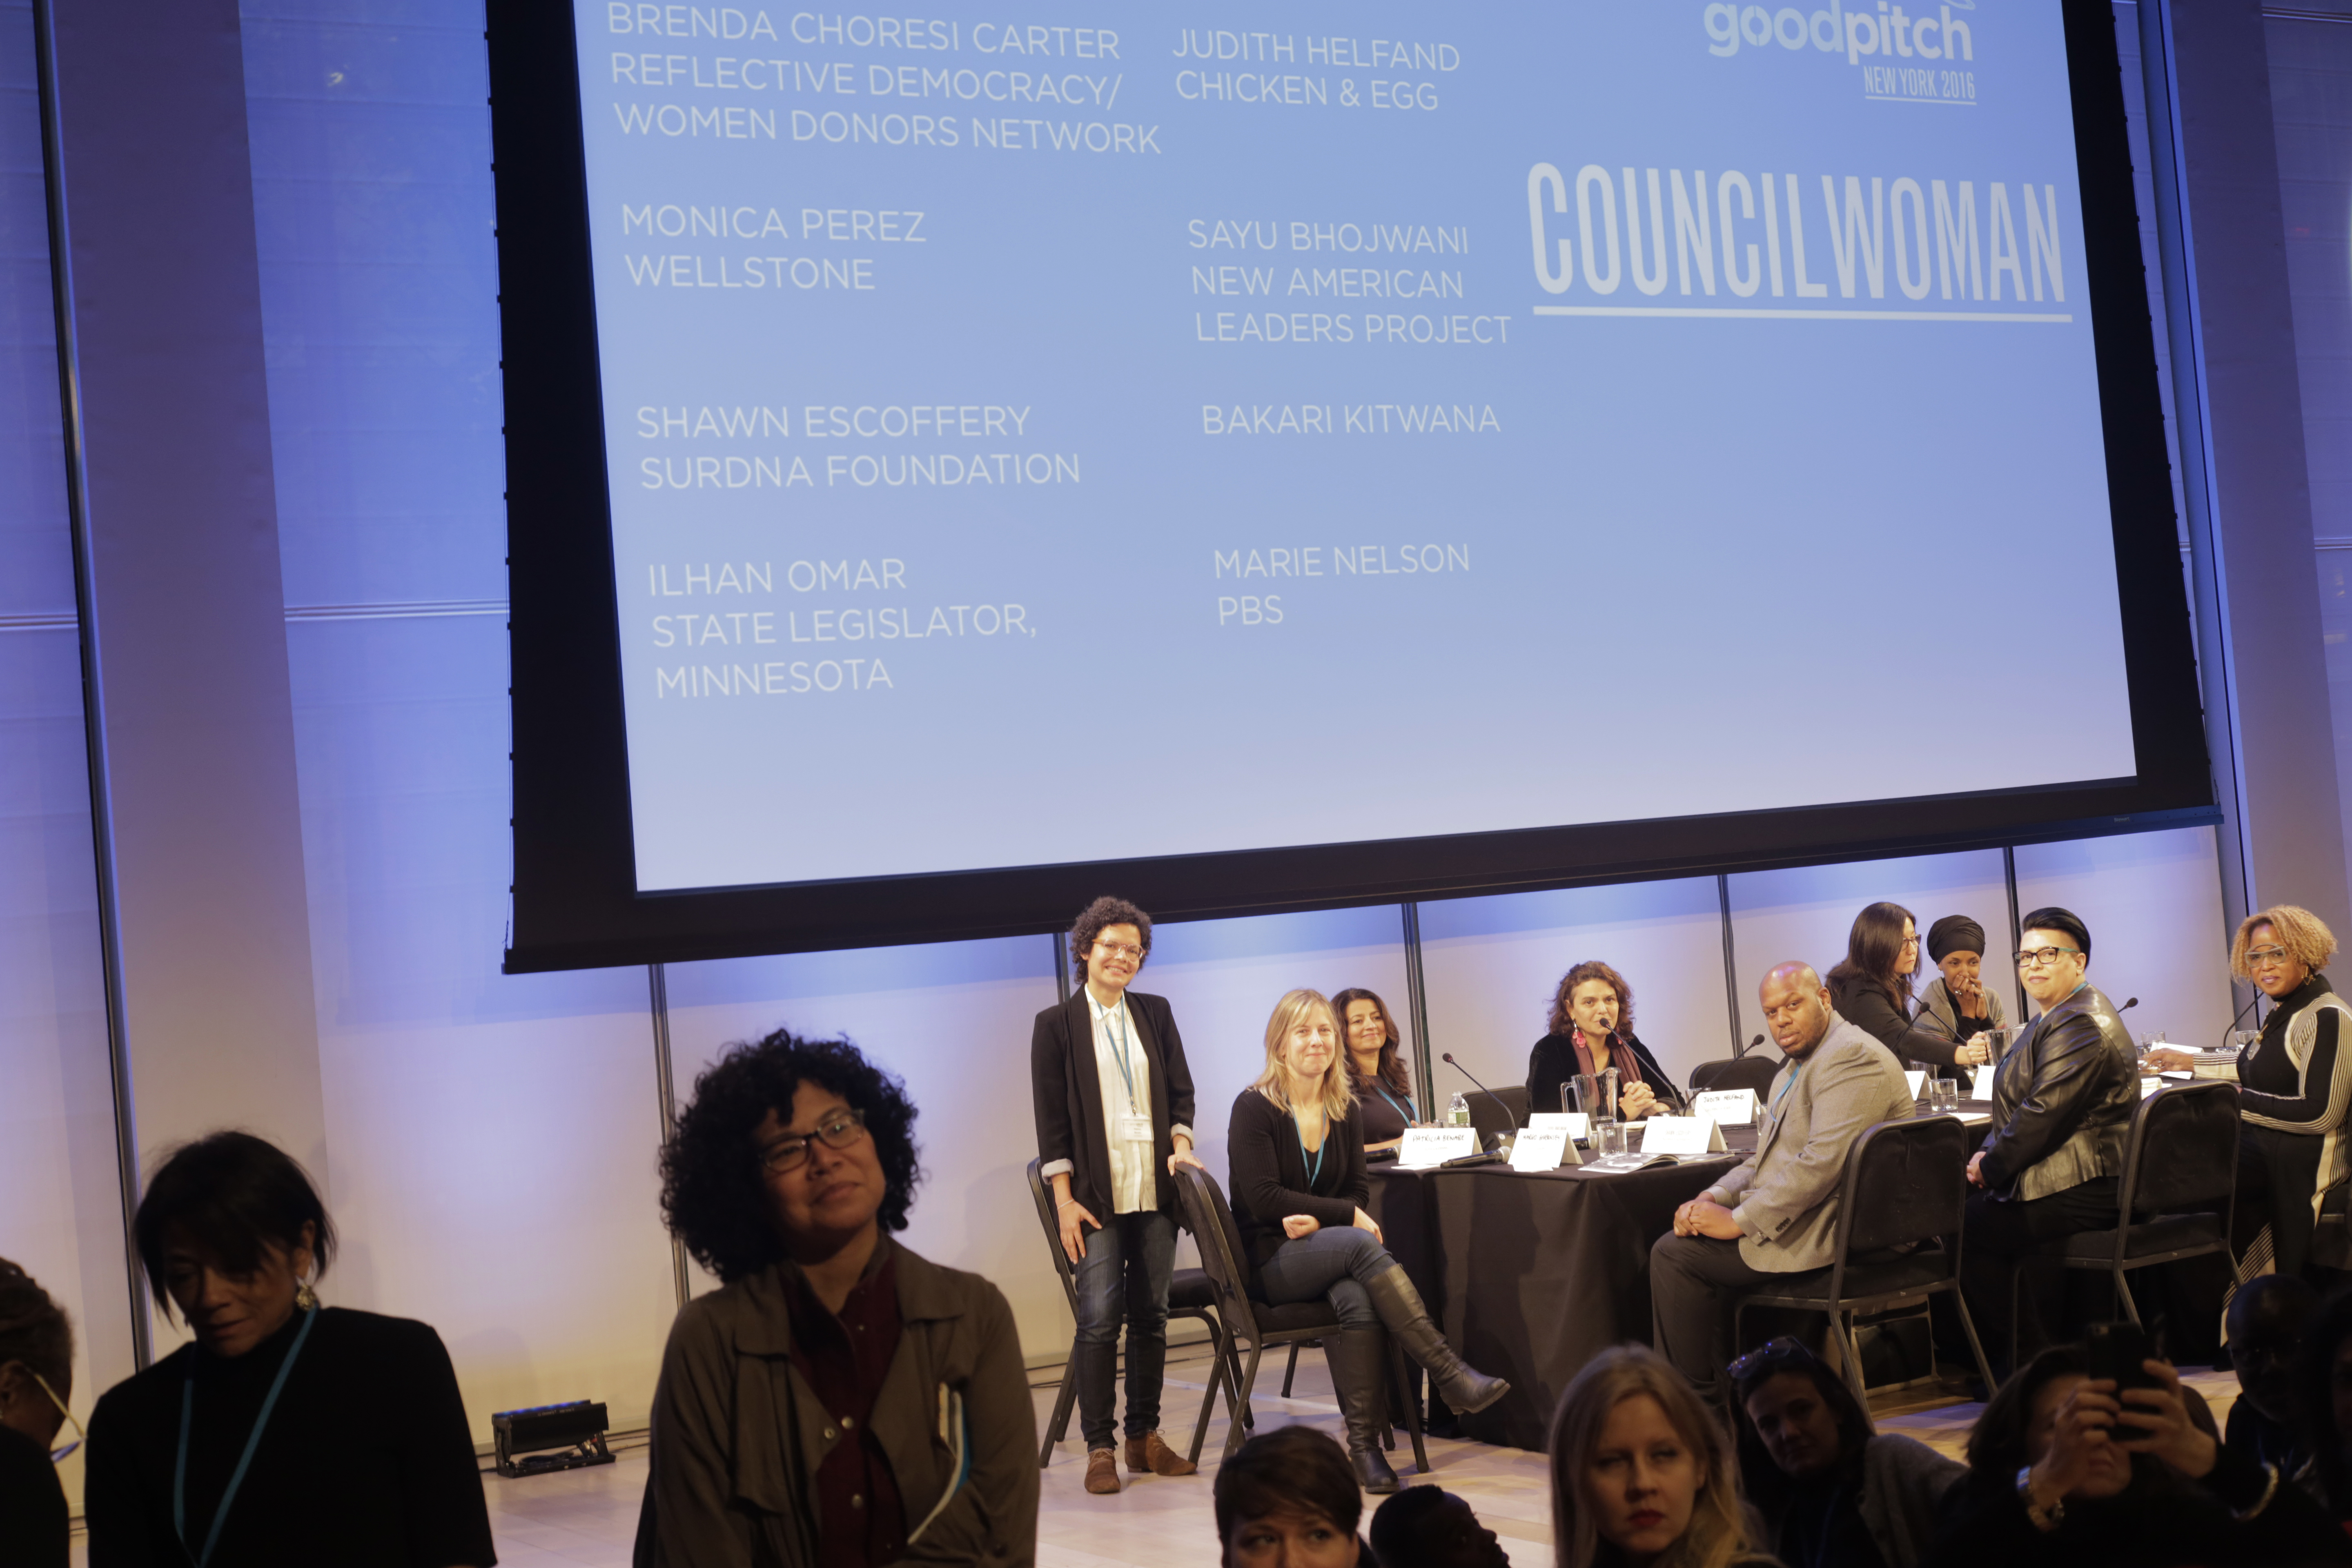 GoodPitch NYC 2016, pitching COUNCILWOMAN